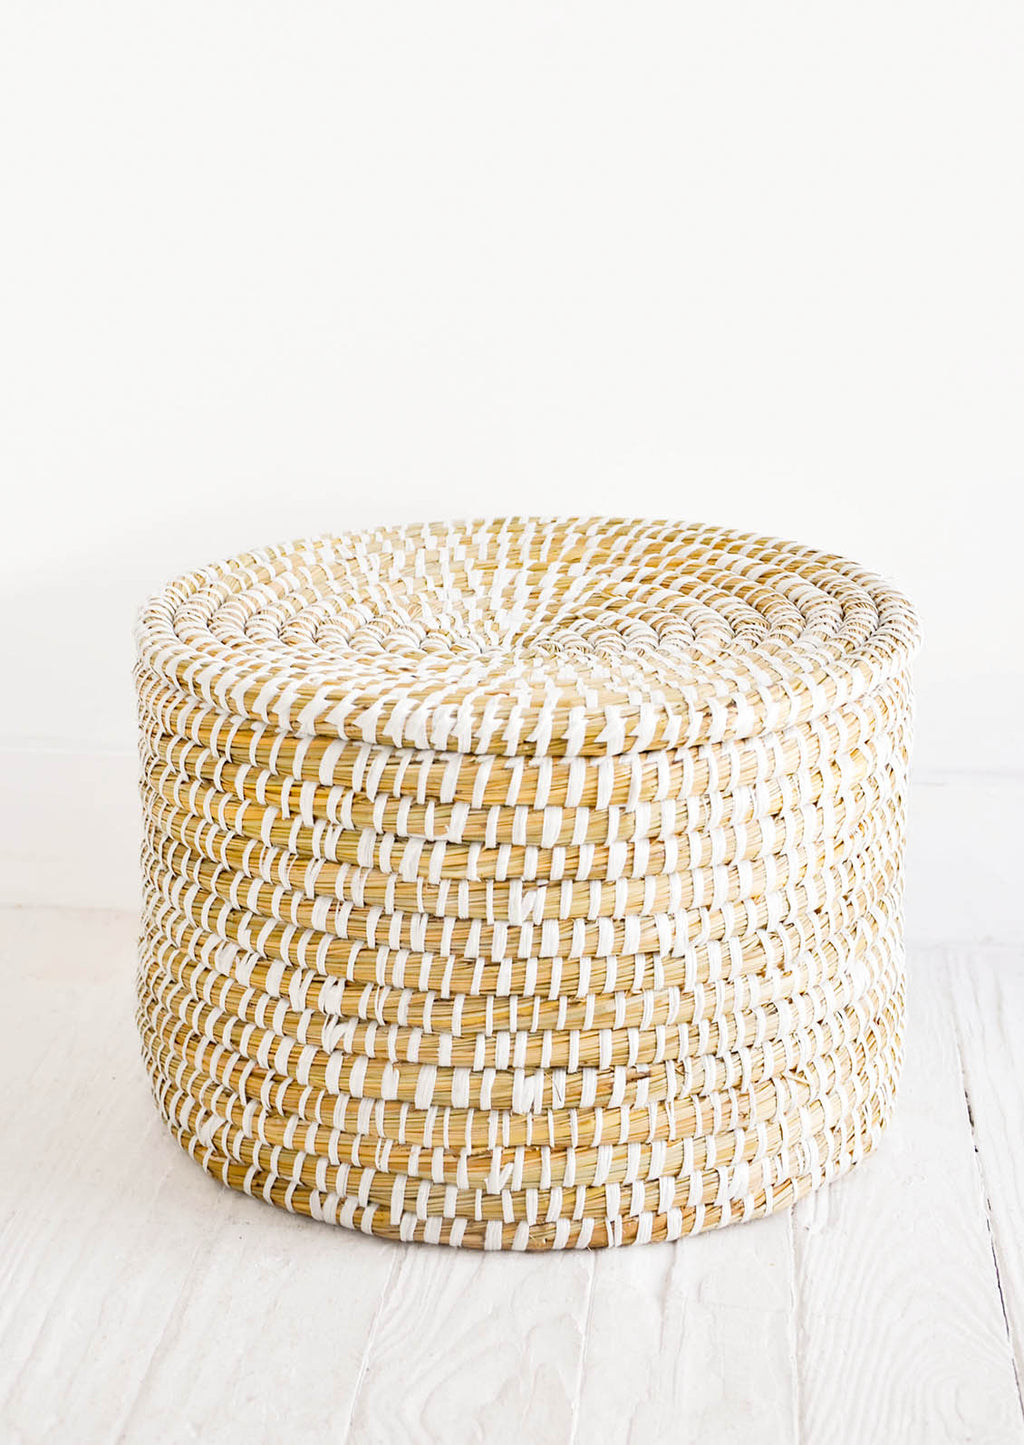 1: Round, lidded drum-shaped seagrass basket in natural with white weave